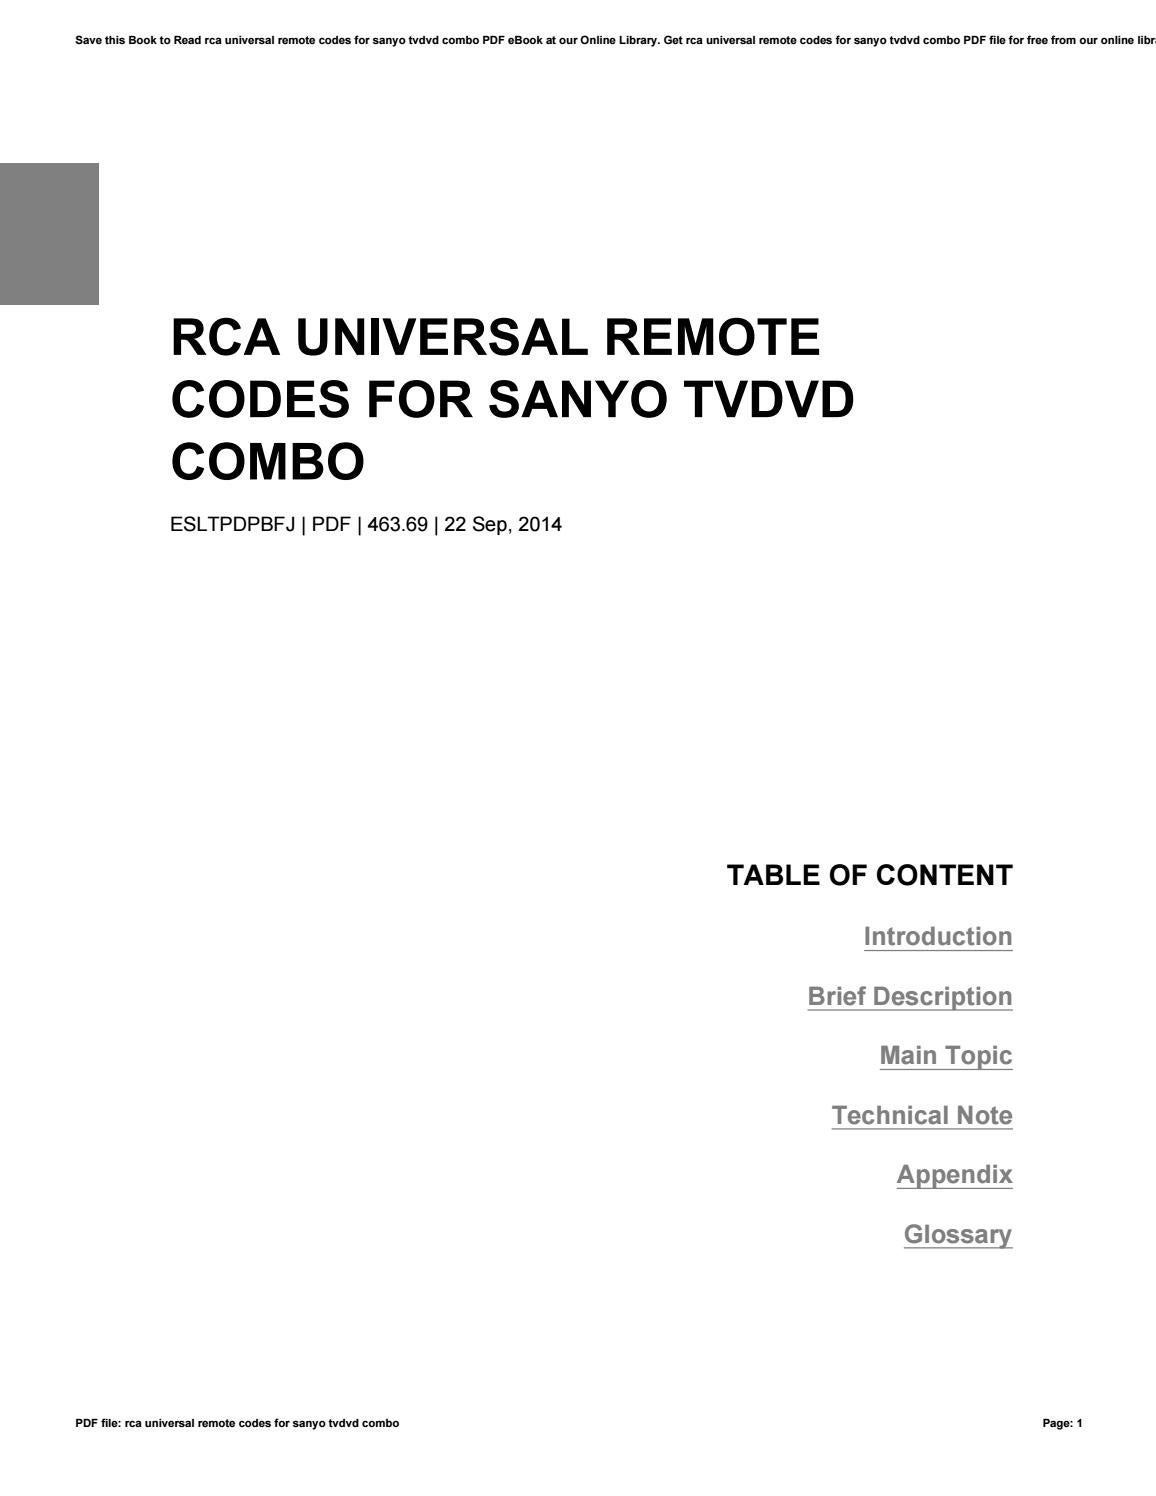 Rca universal remote codes for sanyo tvdvd combo by